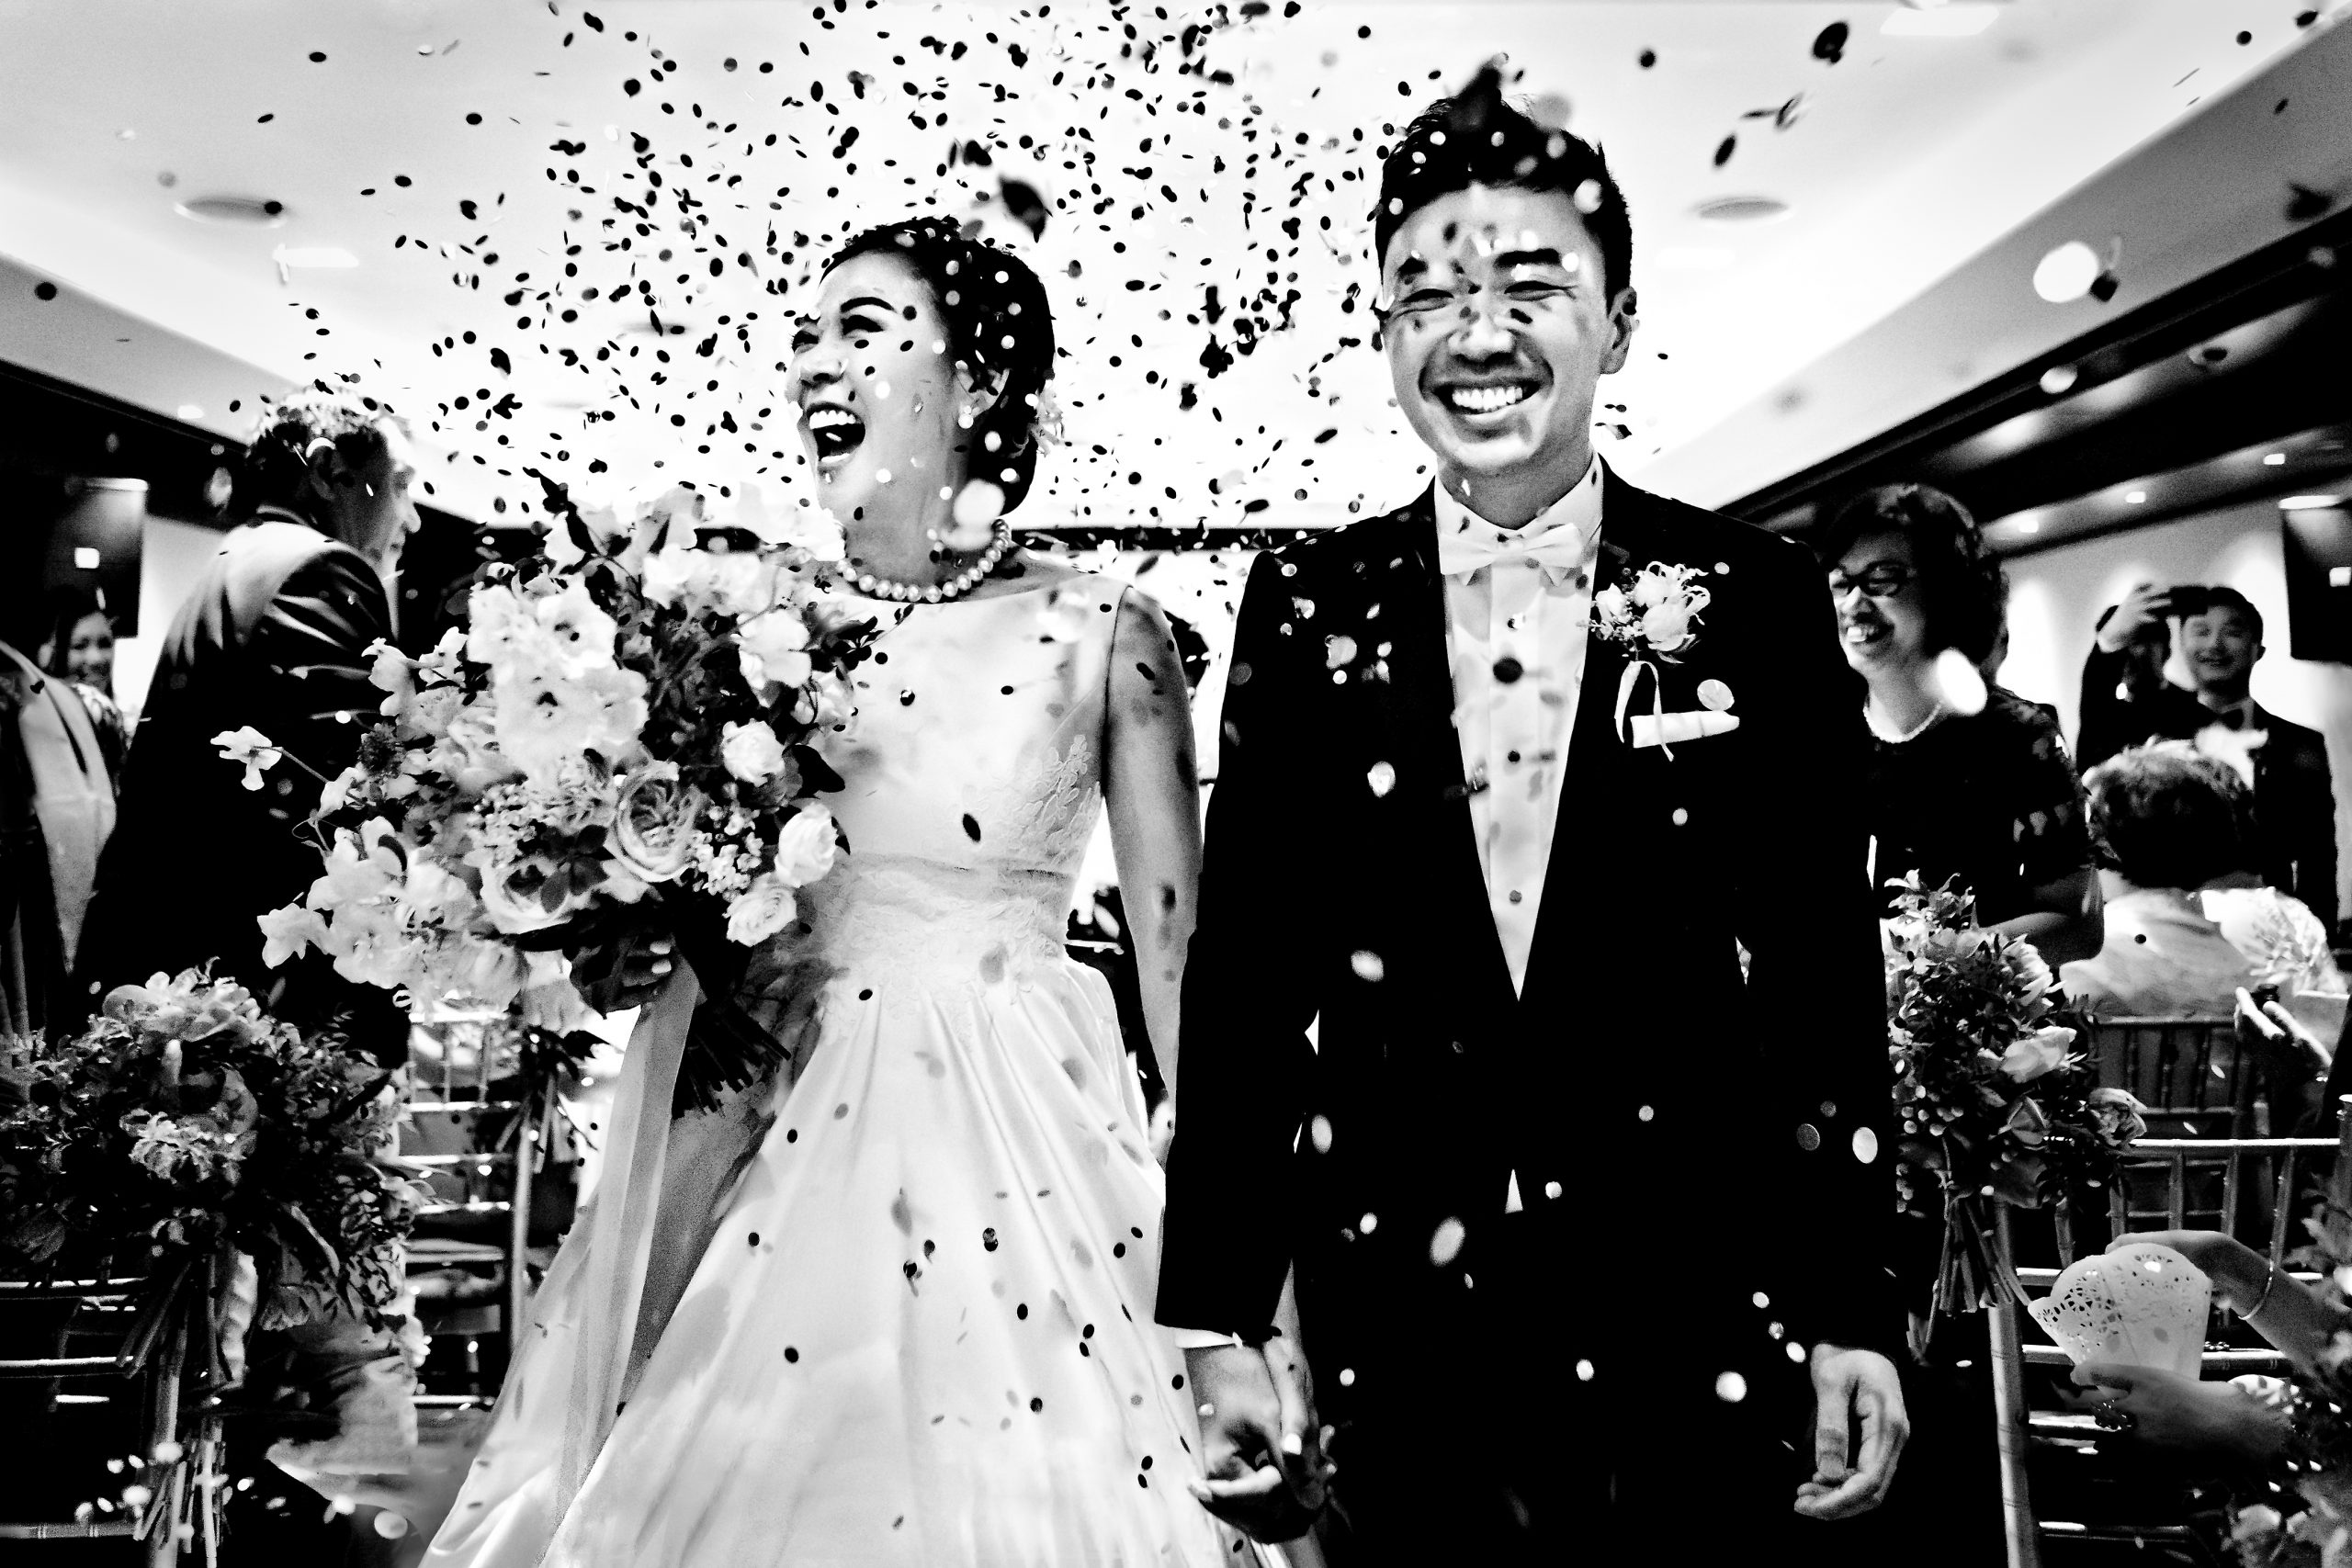 Bride and groom walk down aisle holding hands as confetti showers them from above